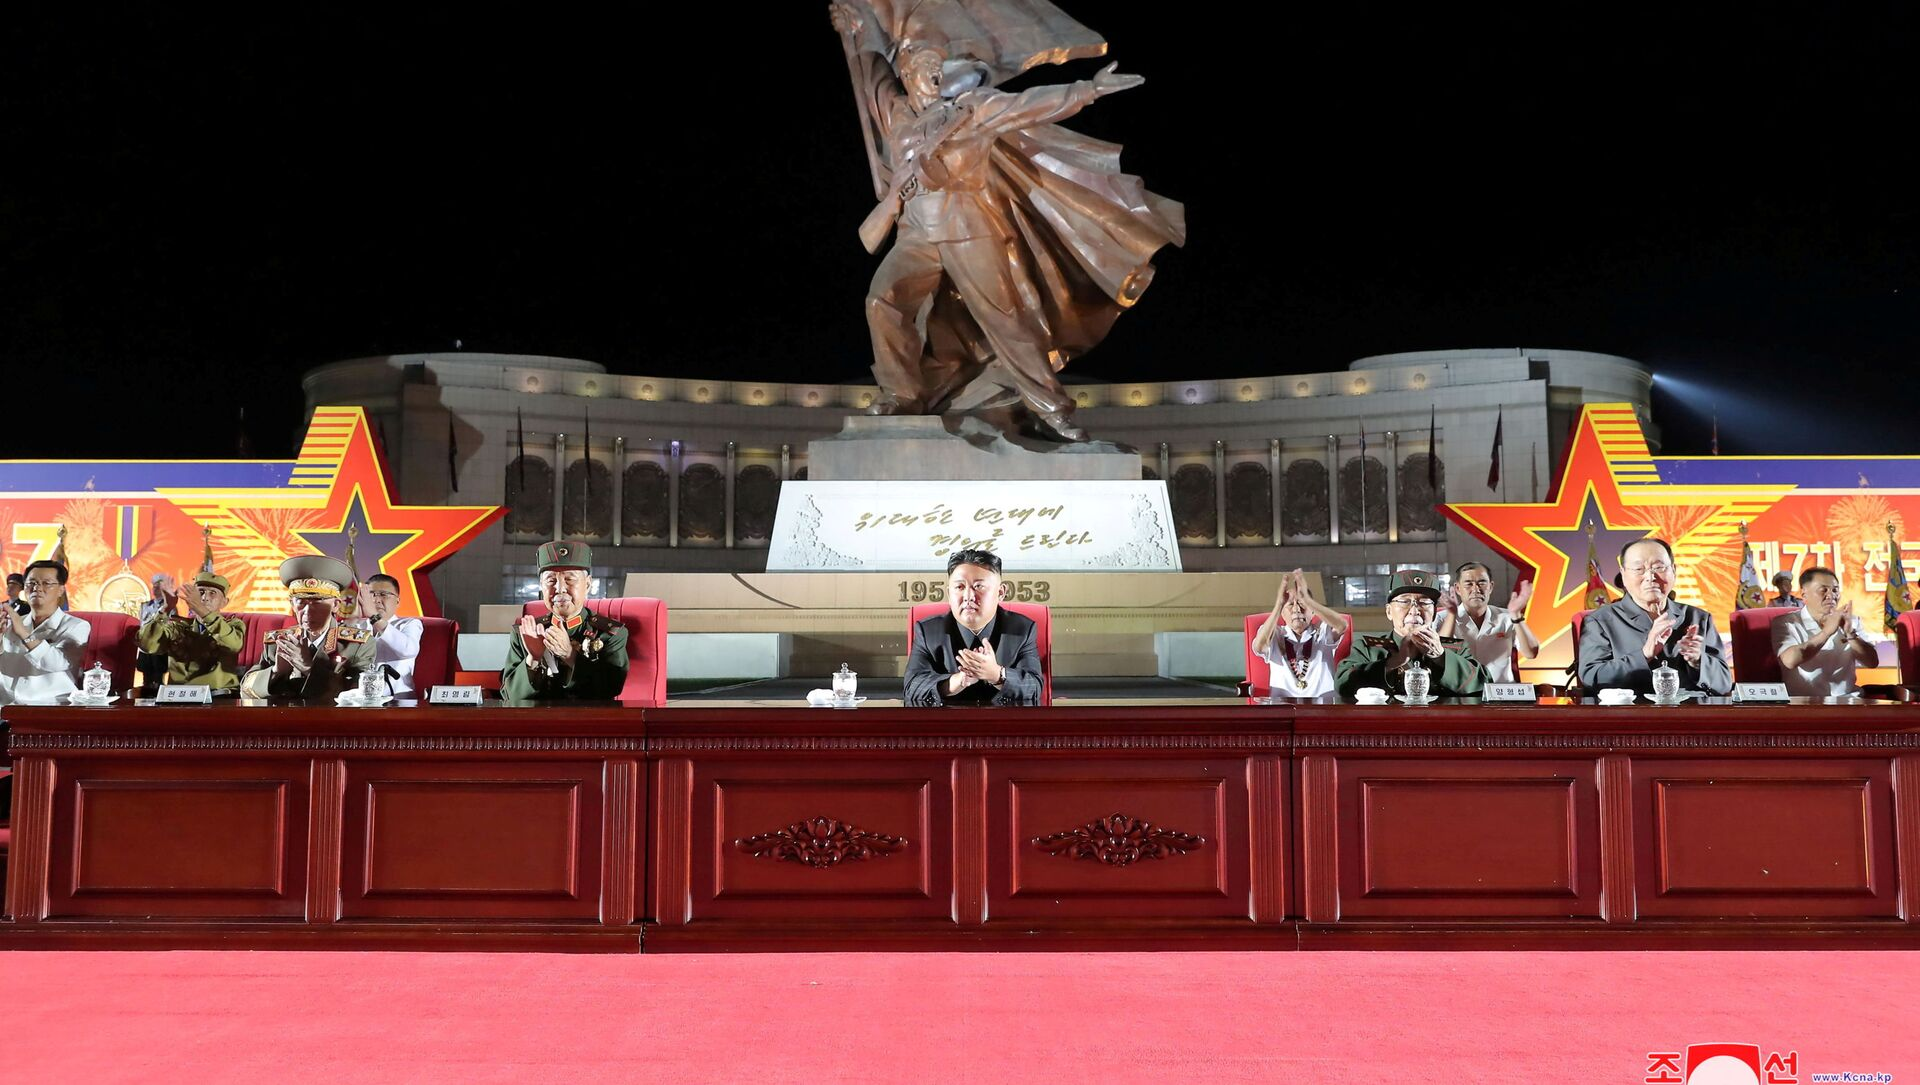 North Korean leader Kim Jong Un attends a ceremony at the Victorious Fatherland Liberation War Museum to mark the 68th anniversary of the Korean armistice in Pyongyang, North Korea, in this photo supplied by North Korea's Korean Central News Agency (KCNA) on July 27, 2021 - Sputnik International, 1920, 28.07.2021